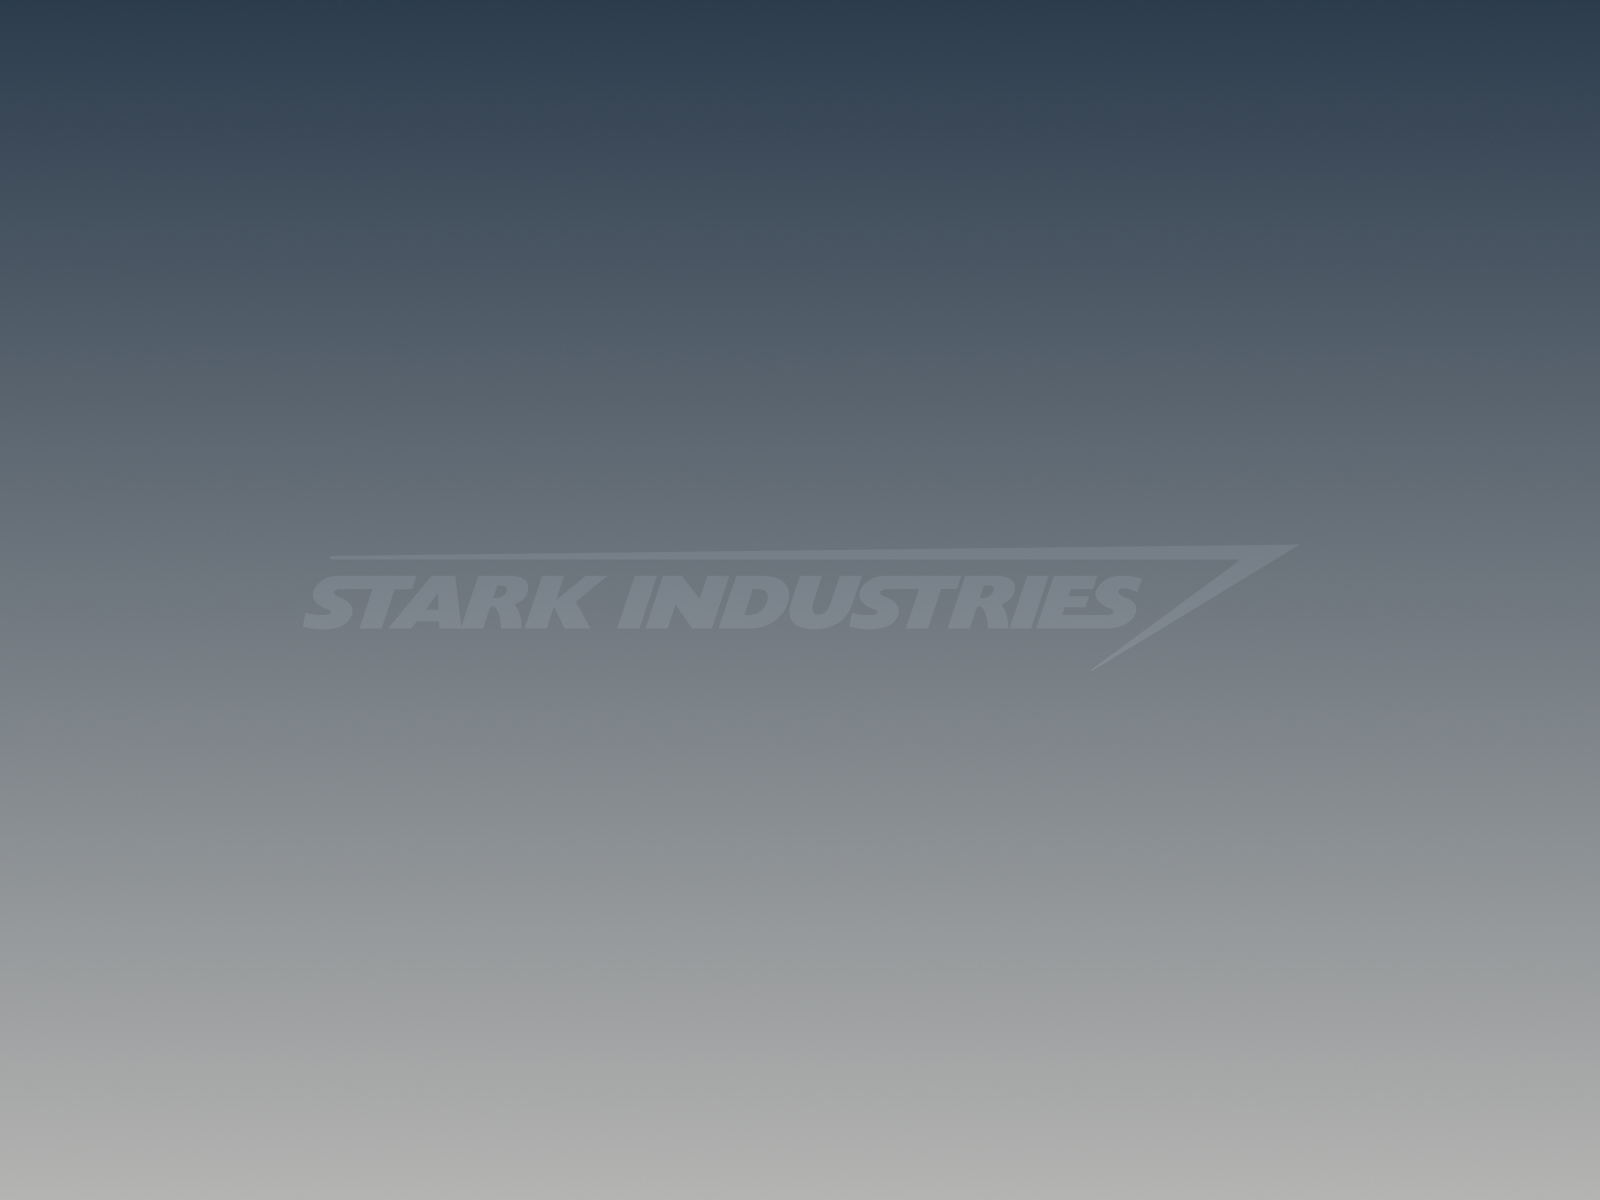 Re: Iron Man - Stark Industries Logo